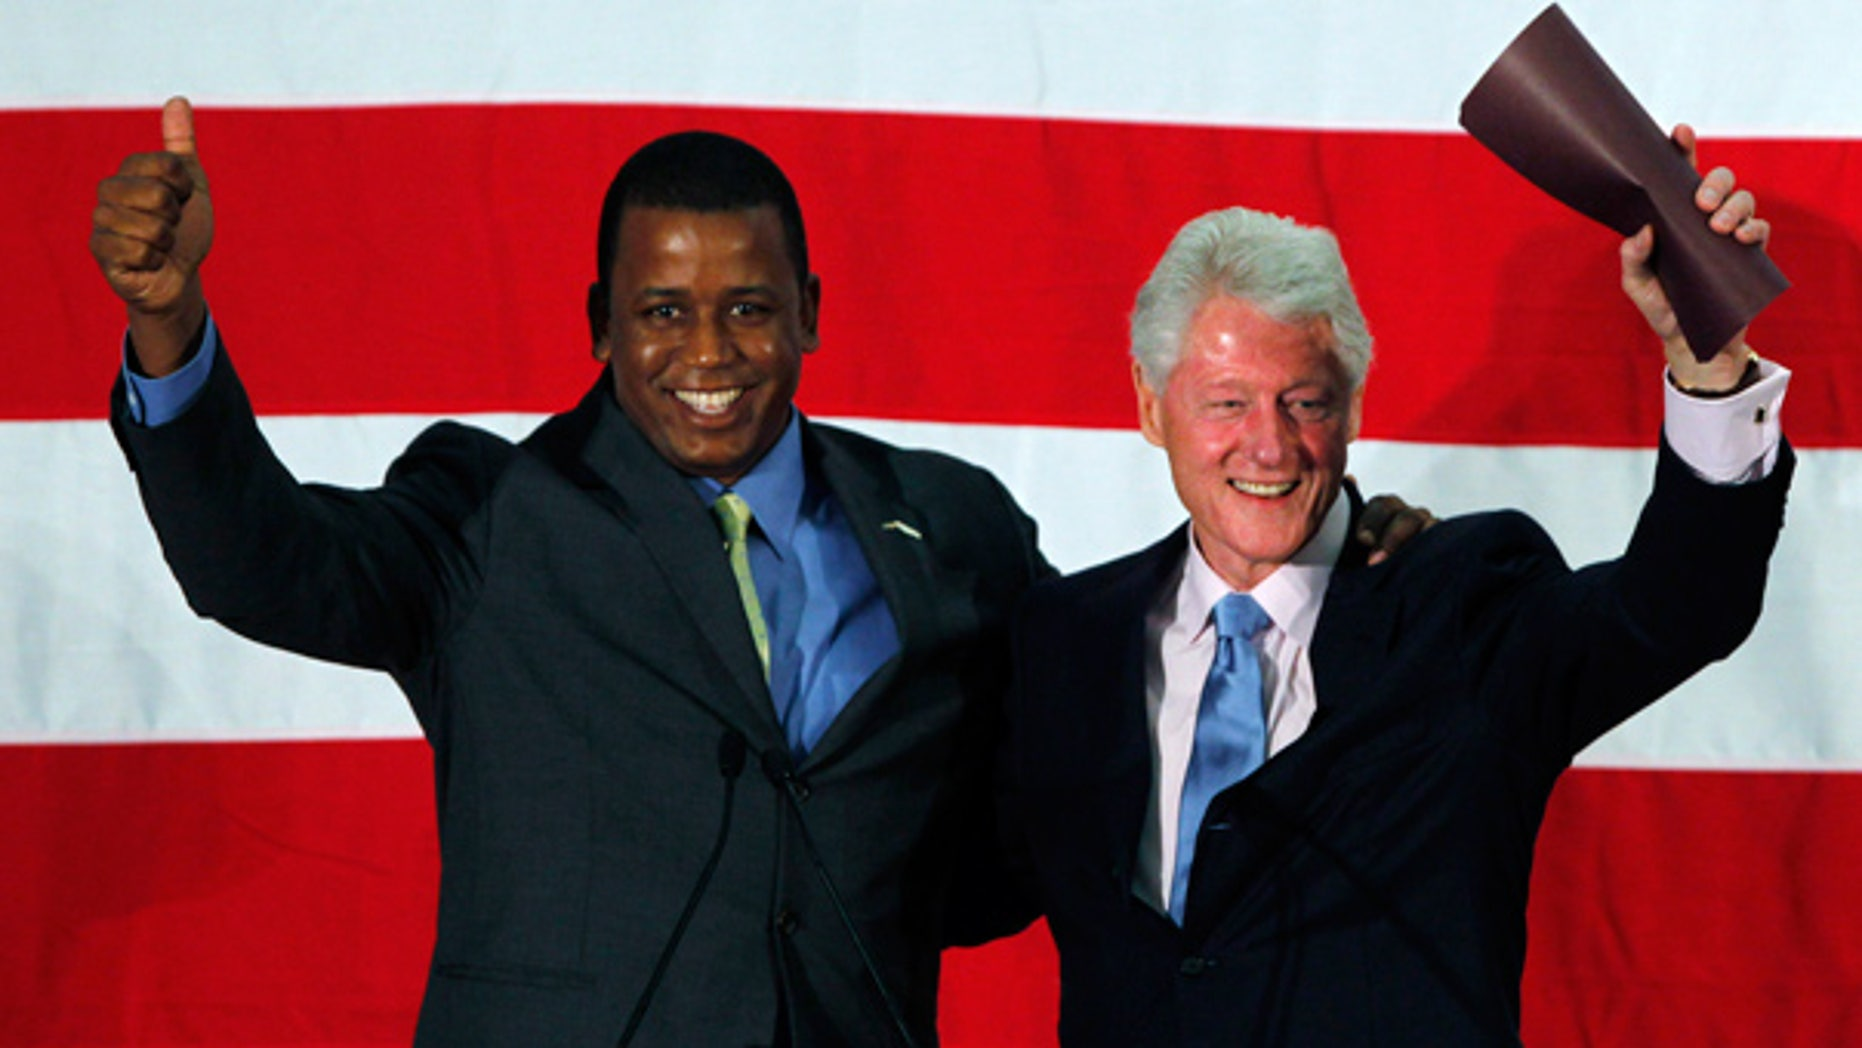 Aug. 16: Rep. Kendrick Meek and Former President Bill Clinton wave as they are introduced during a rally in Davie, Fla.